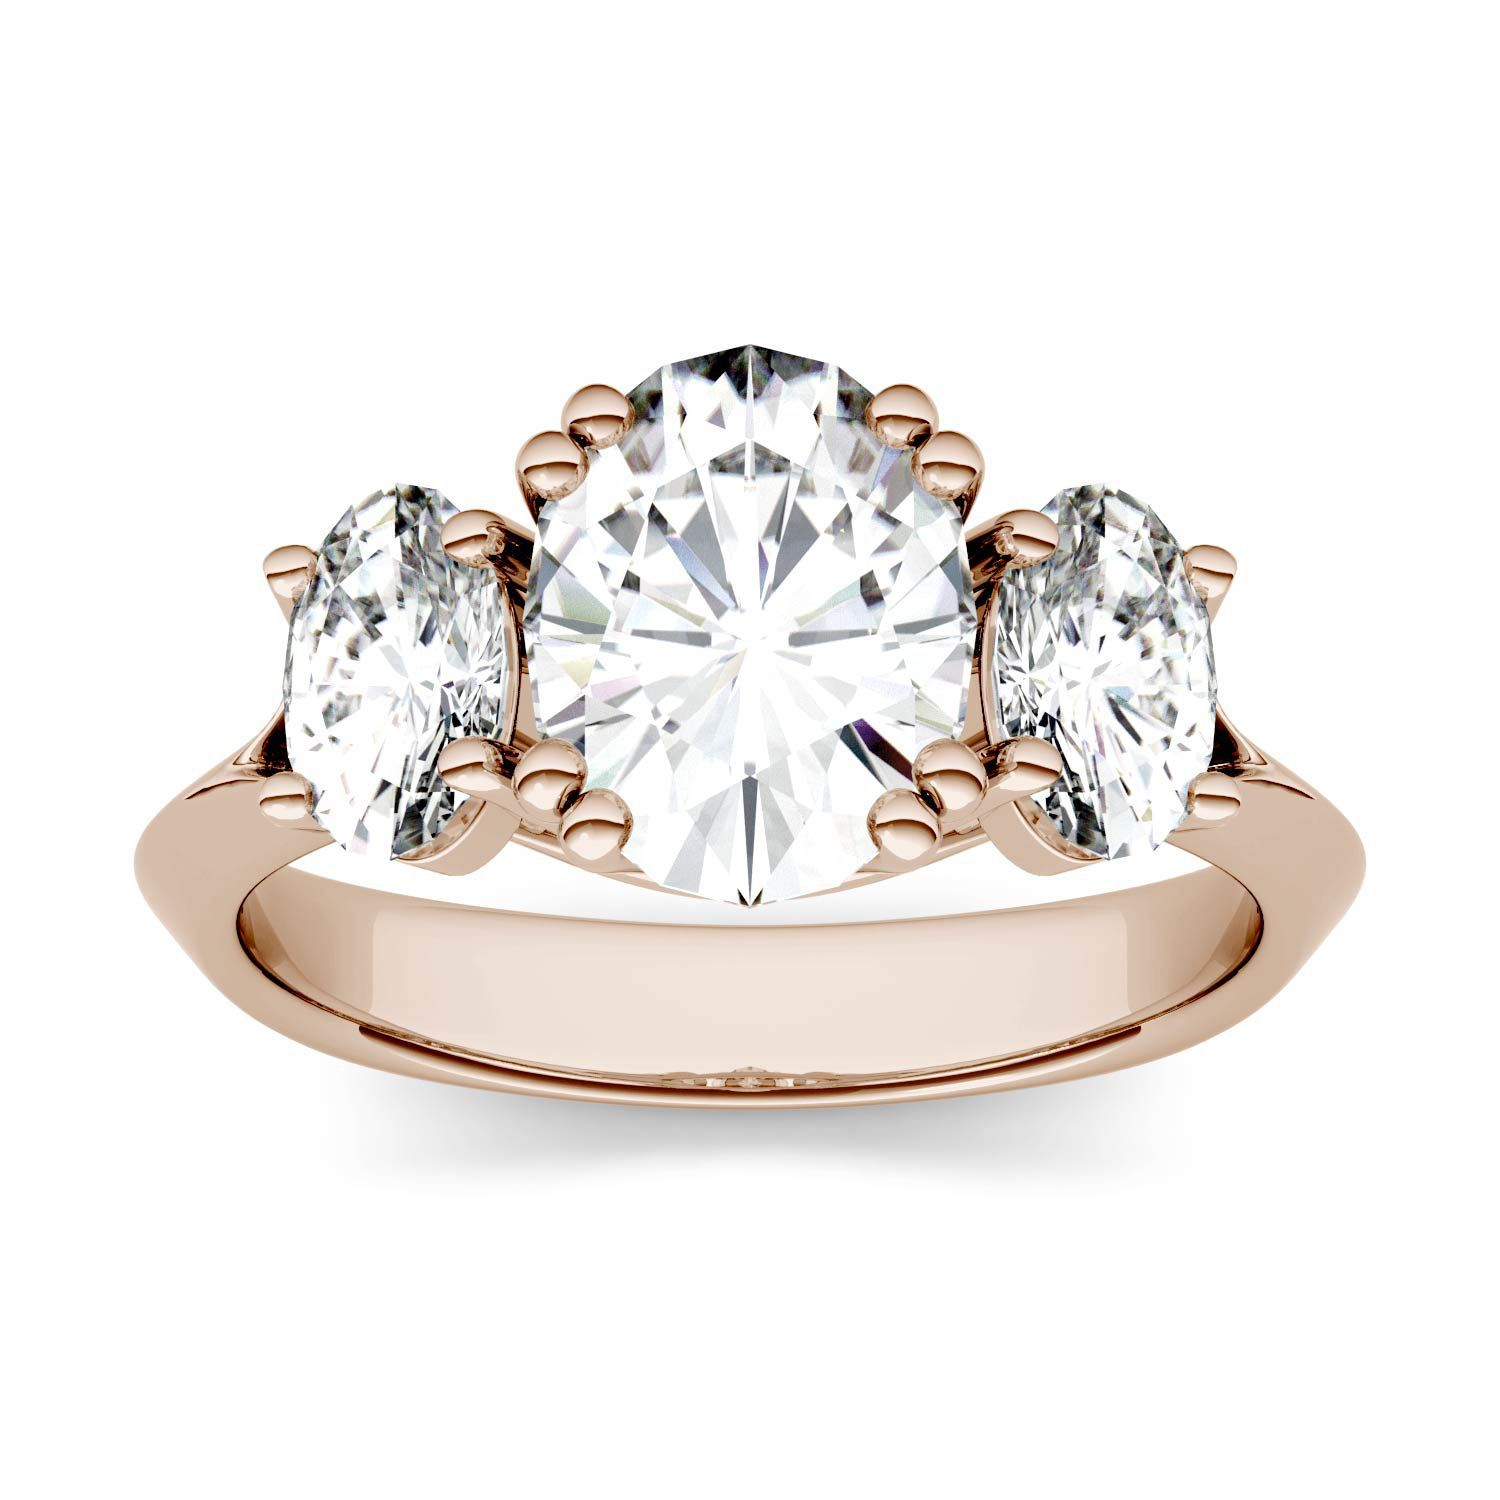 Charles & Colvard Forever One 3.10CTW Oval Colorless Moissanite Three Stone Engagement Ring in 14K Rose Gold